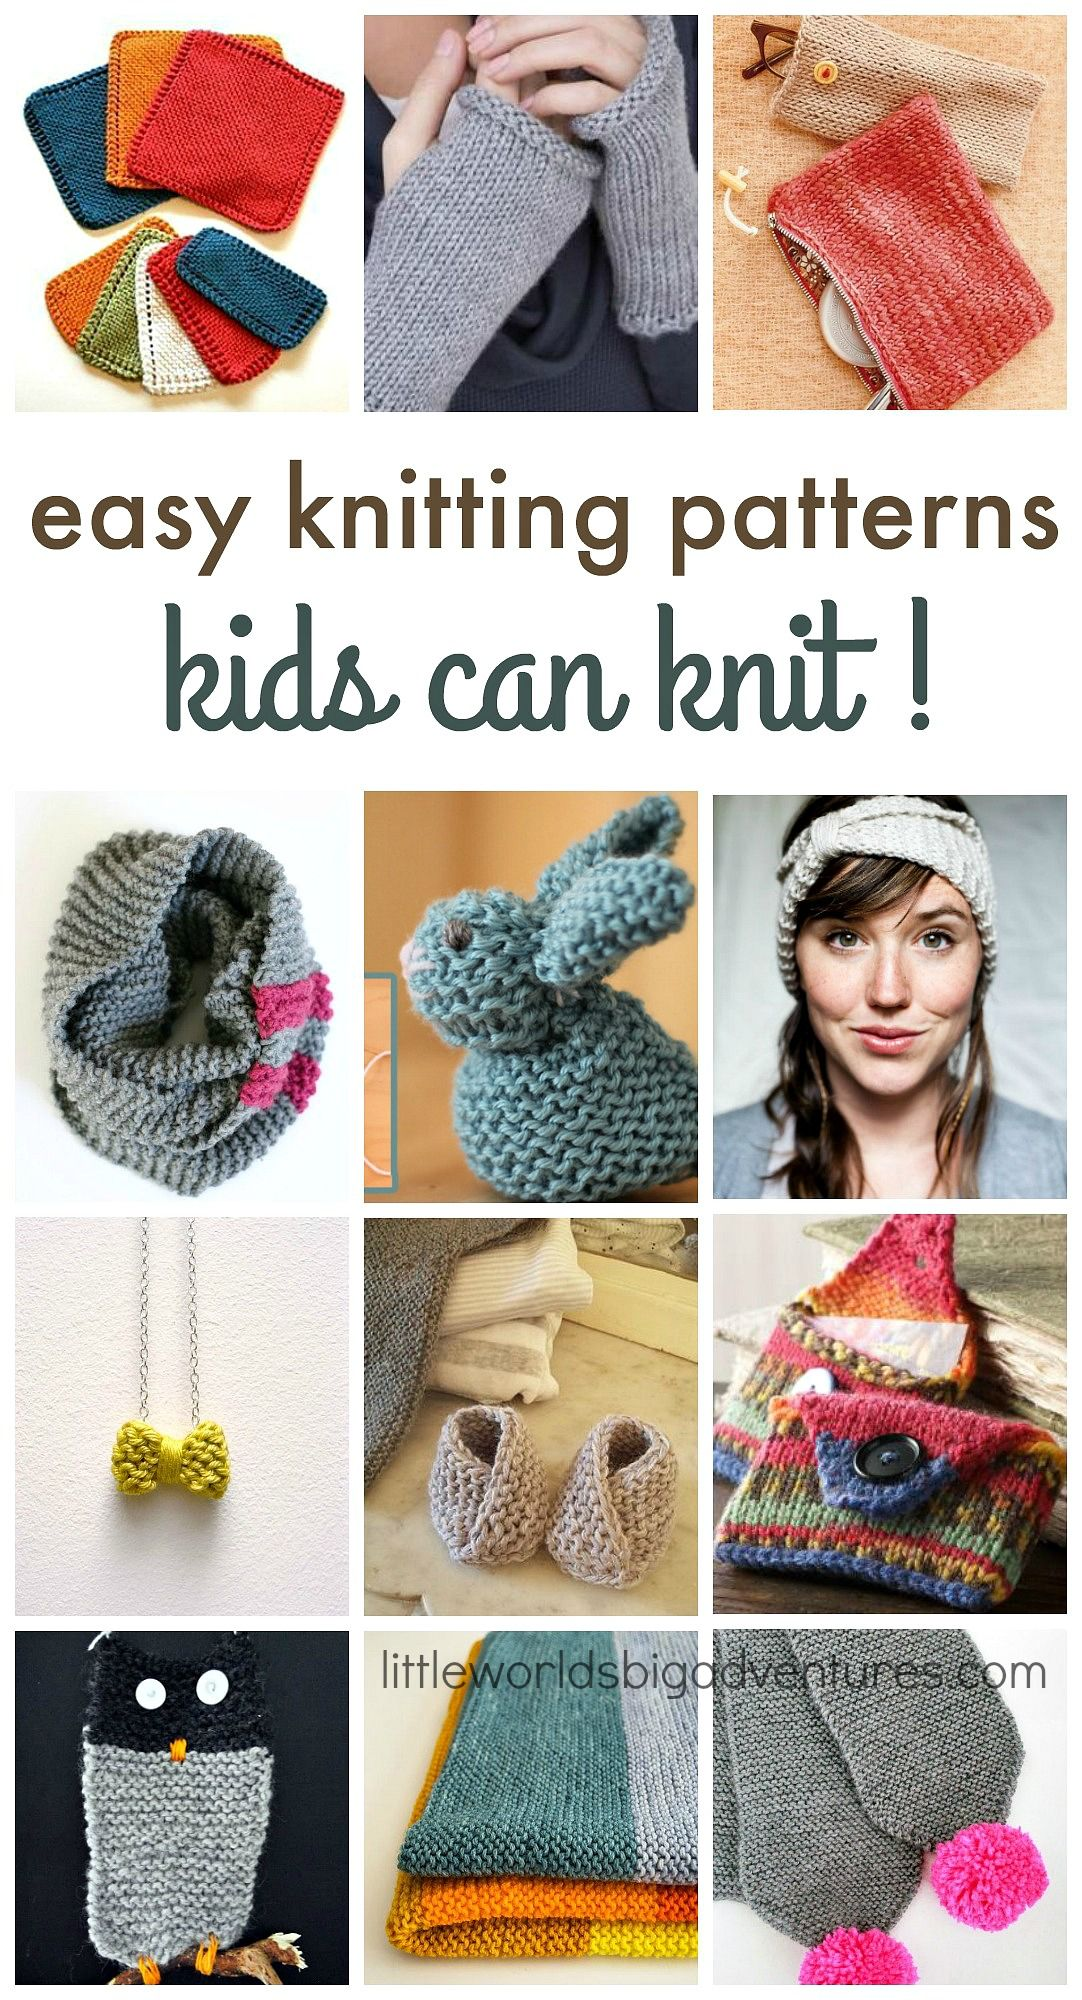 Easy knitting patterns kids can knit! #knittingpatterns #teens #tween #knitting_inspiration | Little Worlds Big Adventures